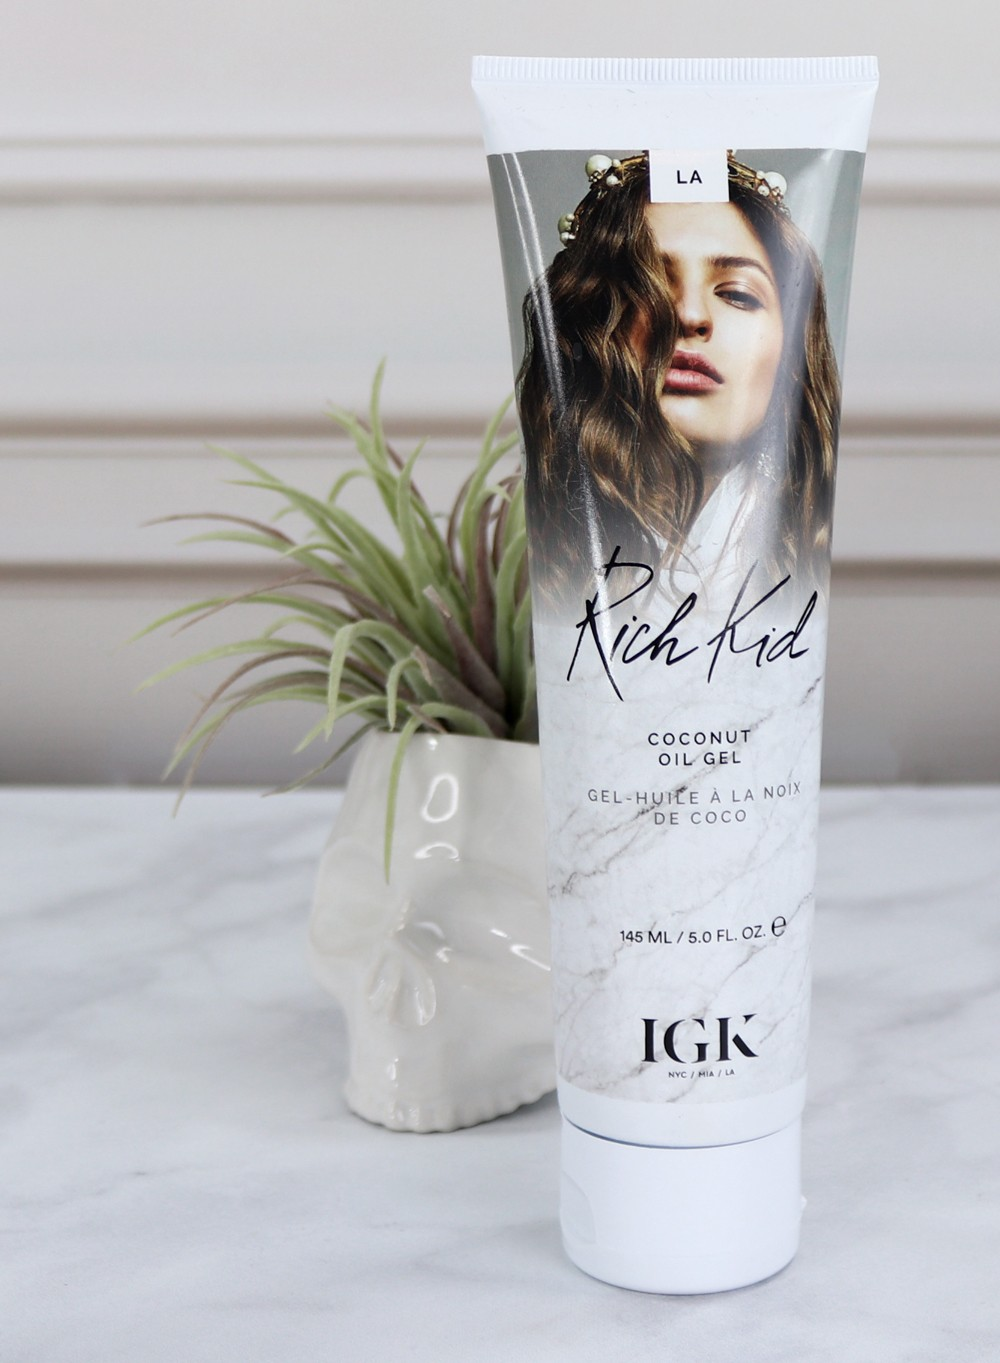 IGK Rich Kid Coconut Oil Gel Review - IGK Cruelty Free Hair Product Hits and Misses by popular Los Angeles cruelty free beauty blogger My Beauty Bunny